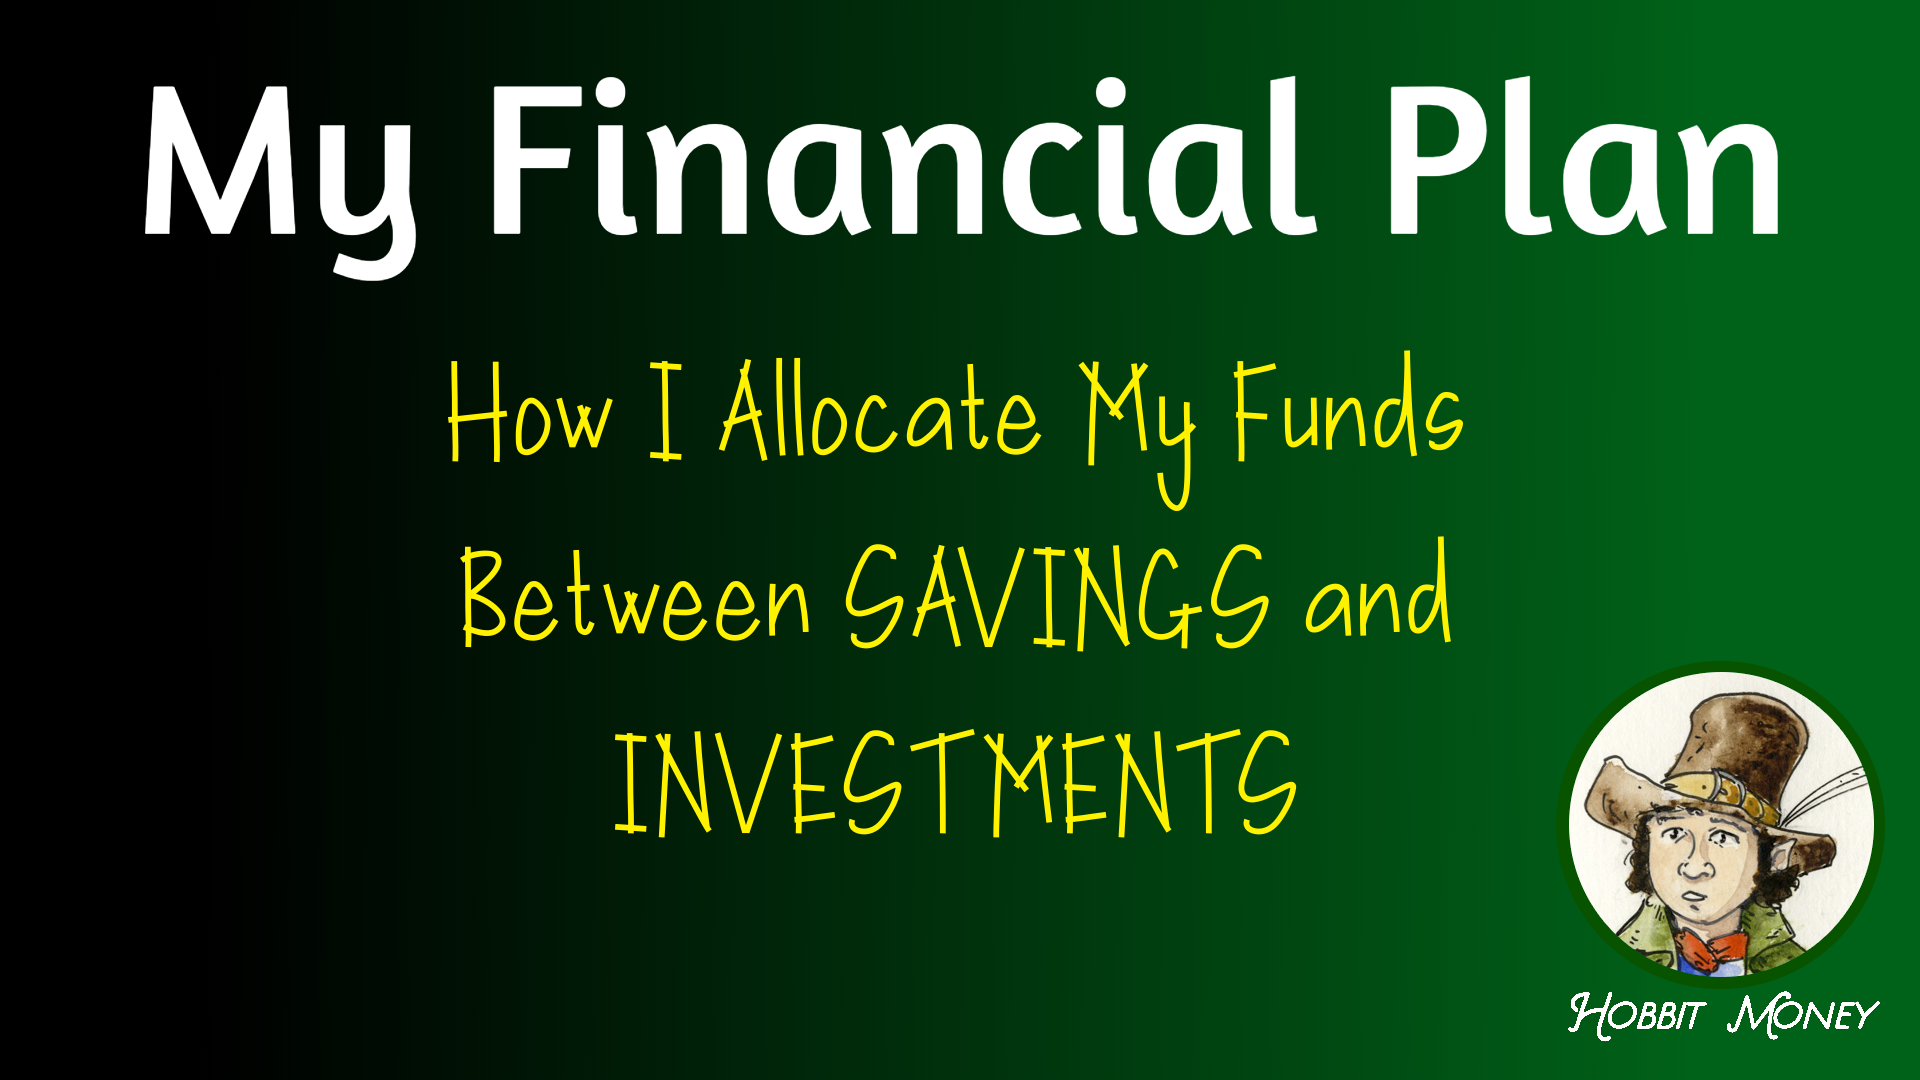 My Financial Plan_ How I allocate funds between savings and investments - Hobbit Money.